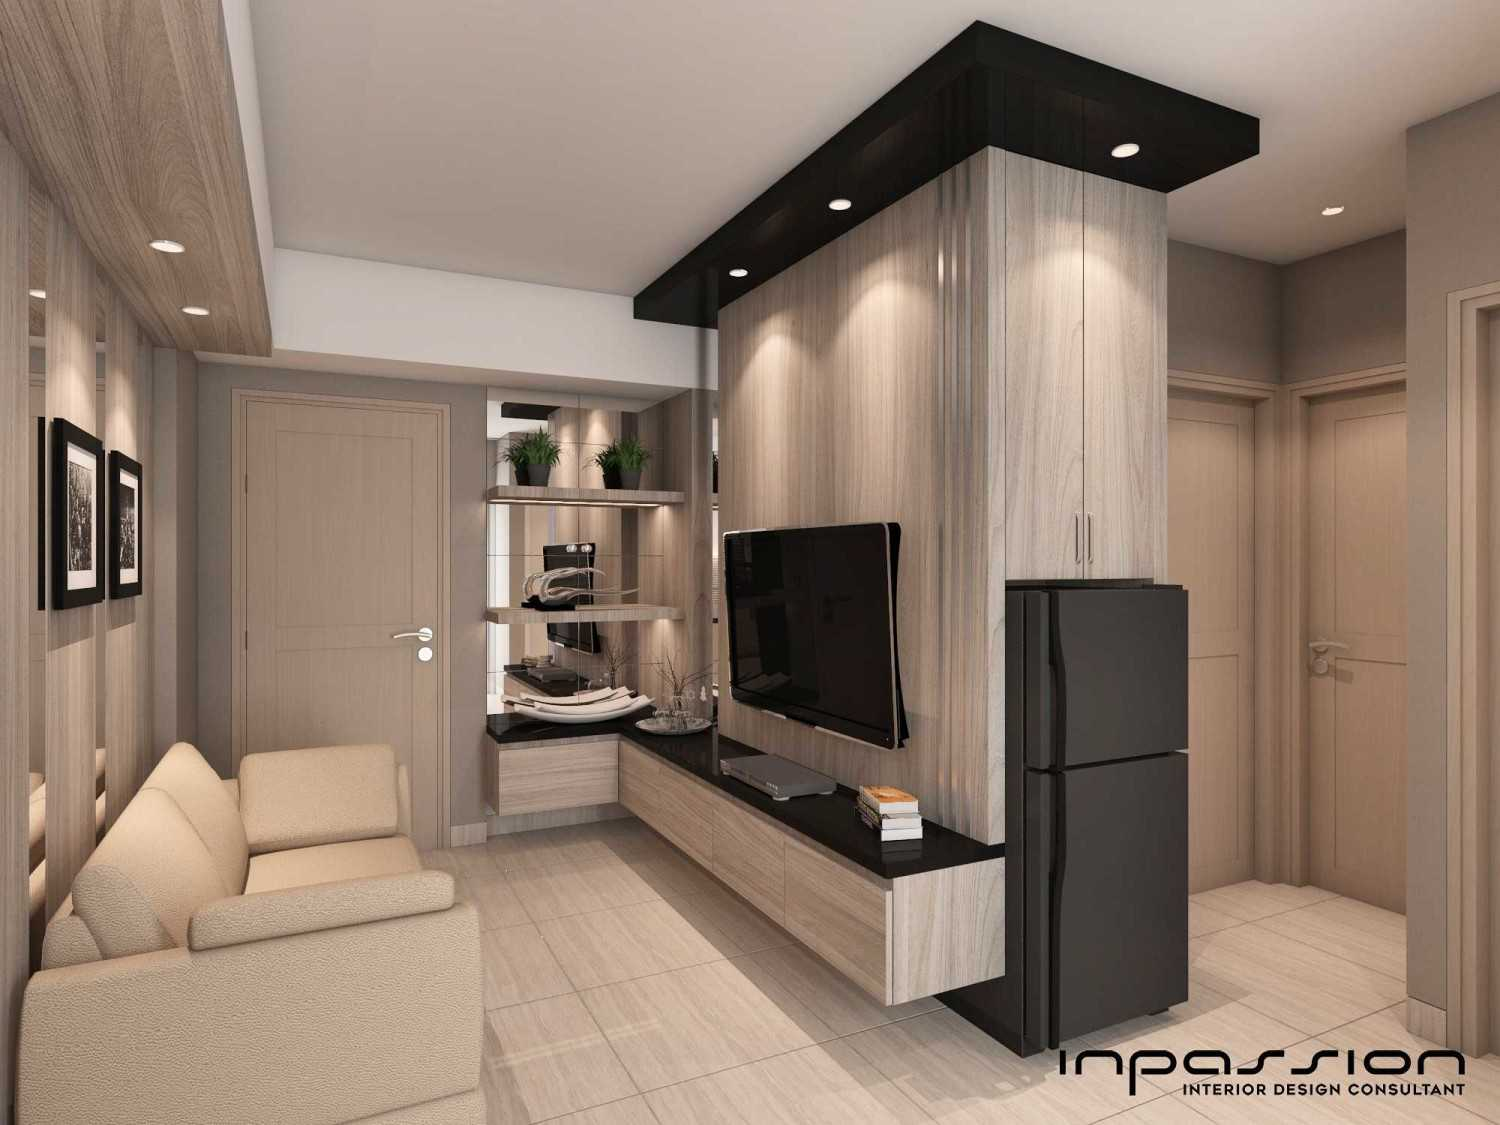 Jasa Design and Build Inpassion Interior Design di Balikpapan